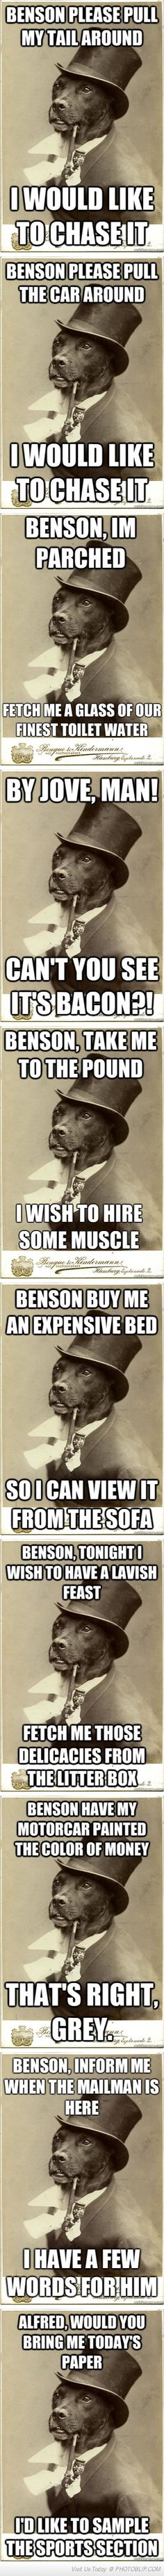 Best Of The Old Money Dog Meme